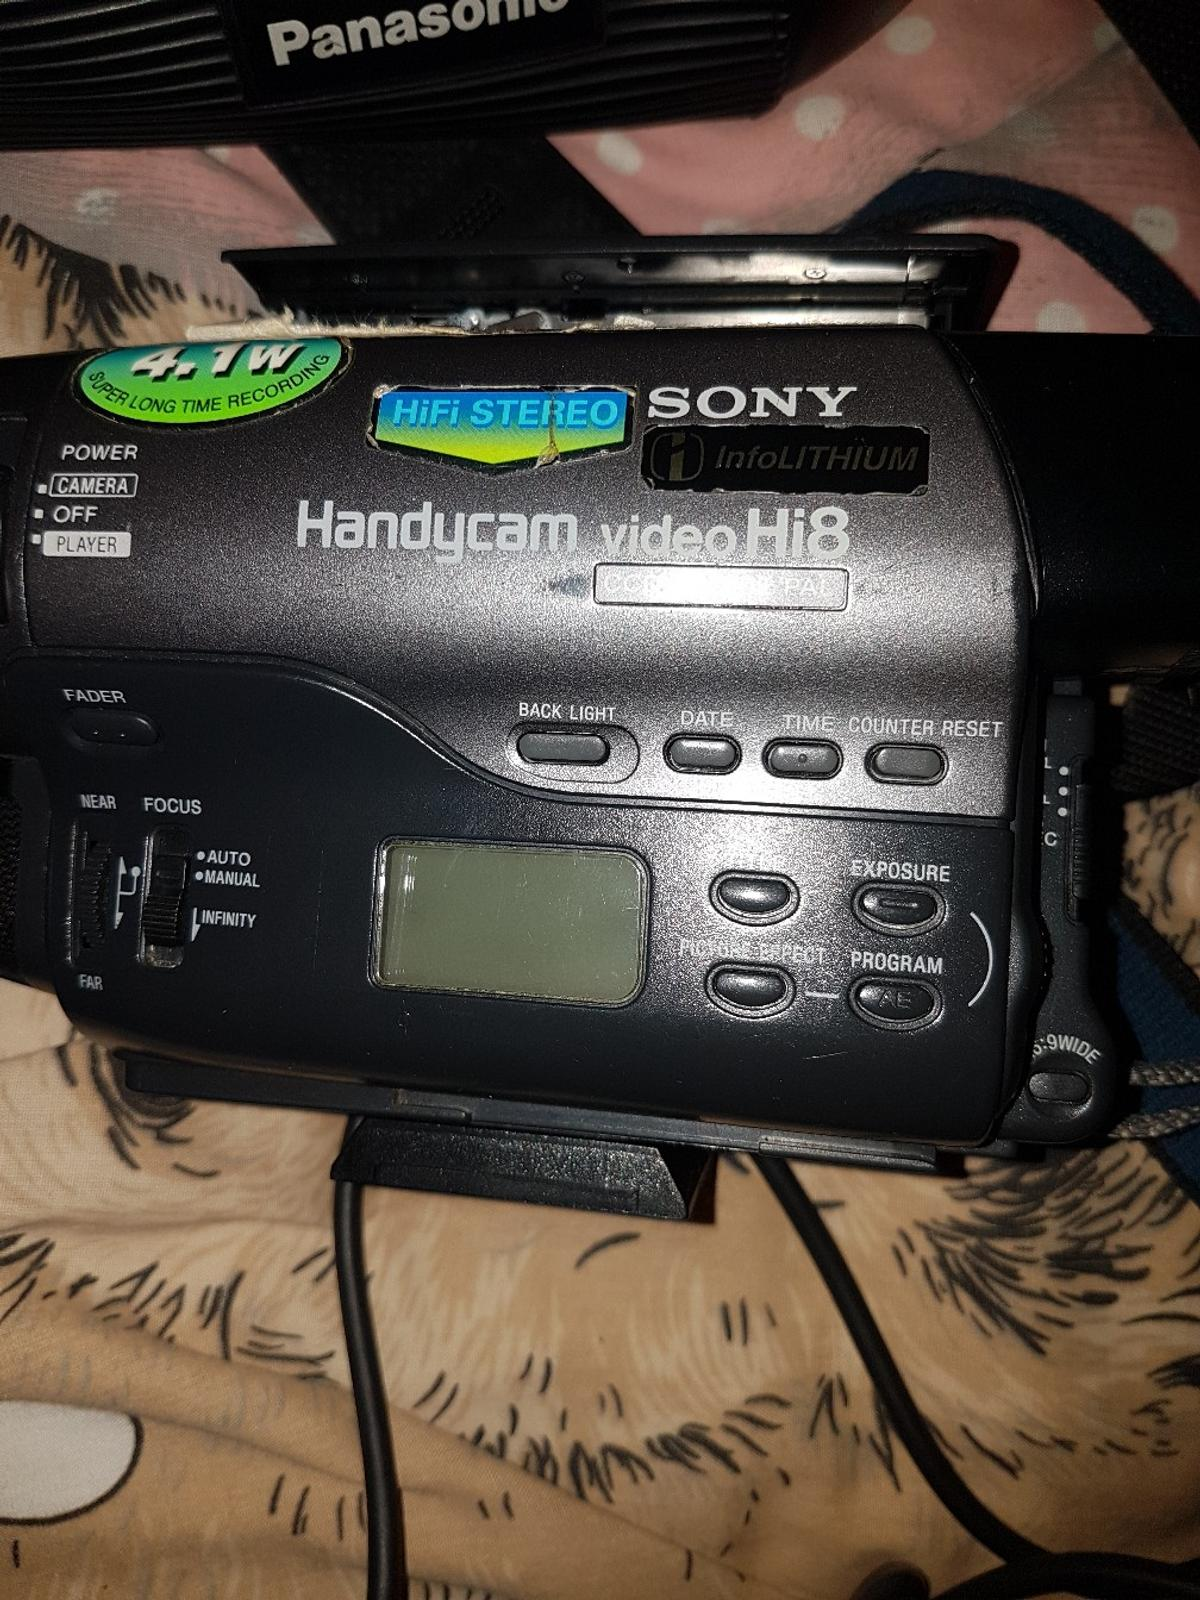 2 sony handycam for sale spares and repairs in B45